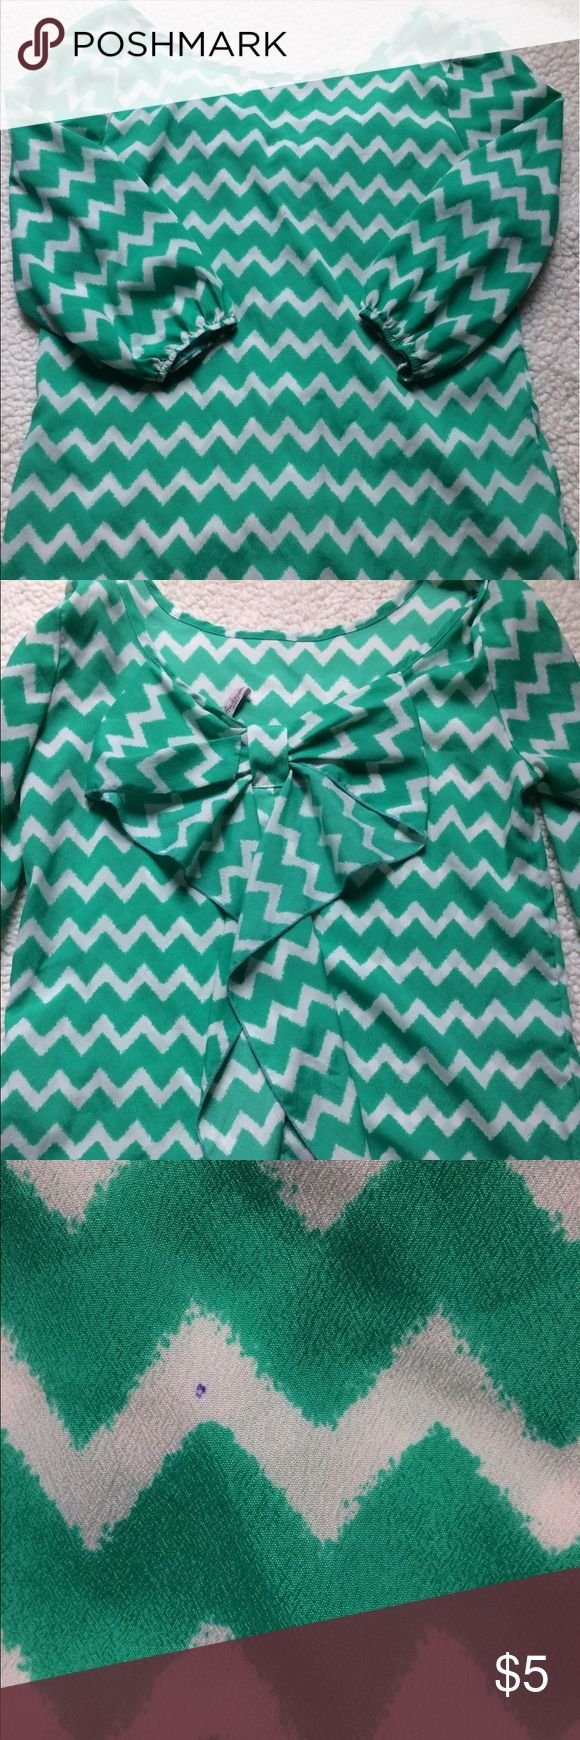 Boutique Chevron Top! Bought at a boutique, has been worn a few times. Does have a pen stain but is barely noticeable when worn. Everything in my closet needs to go asap, everything is on sale!! Tops